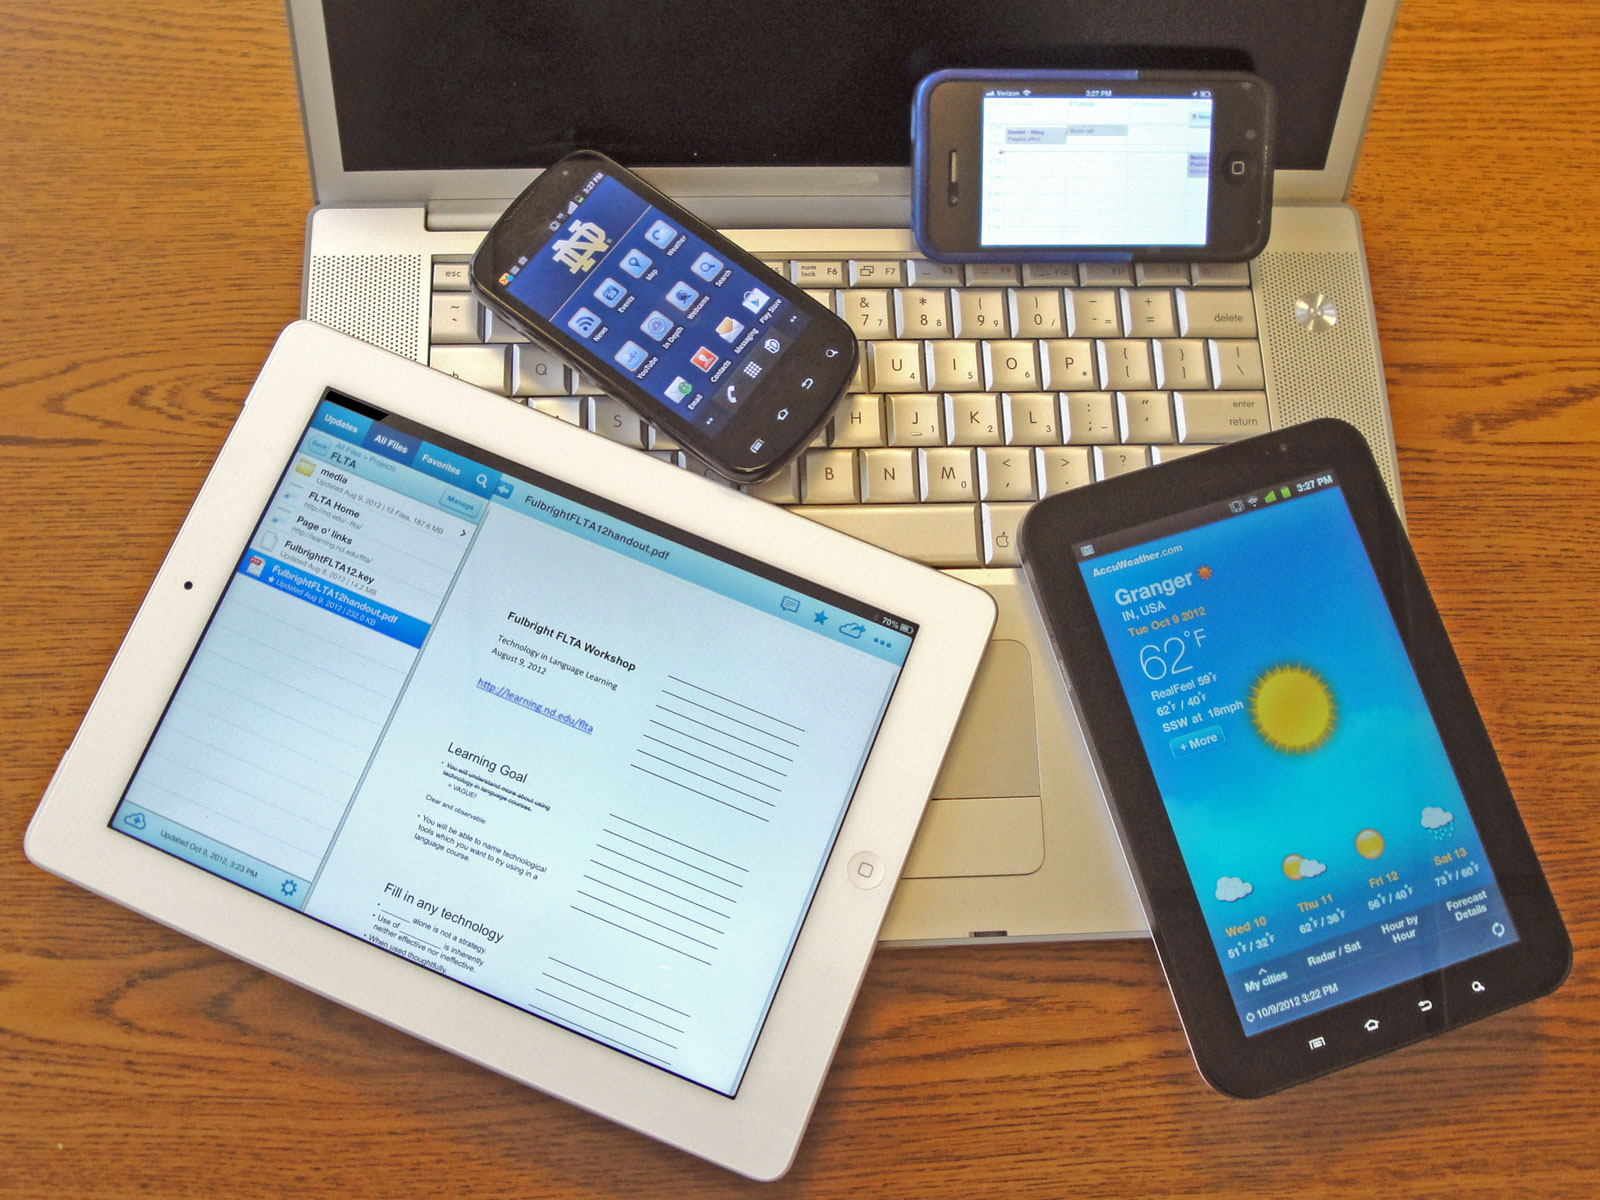 2014 will be the year enterprise goes mobile - BYOD boom